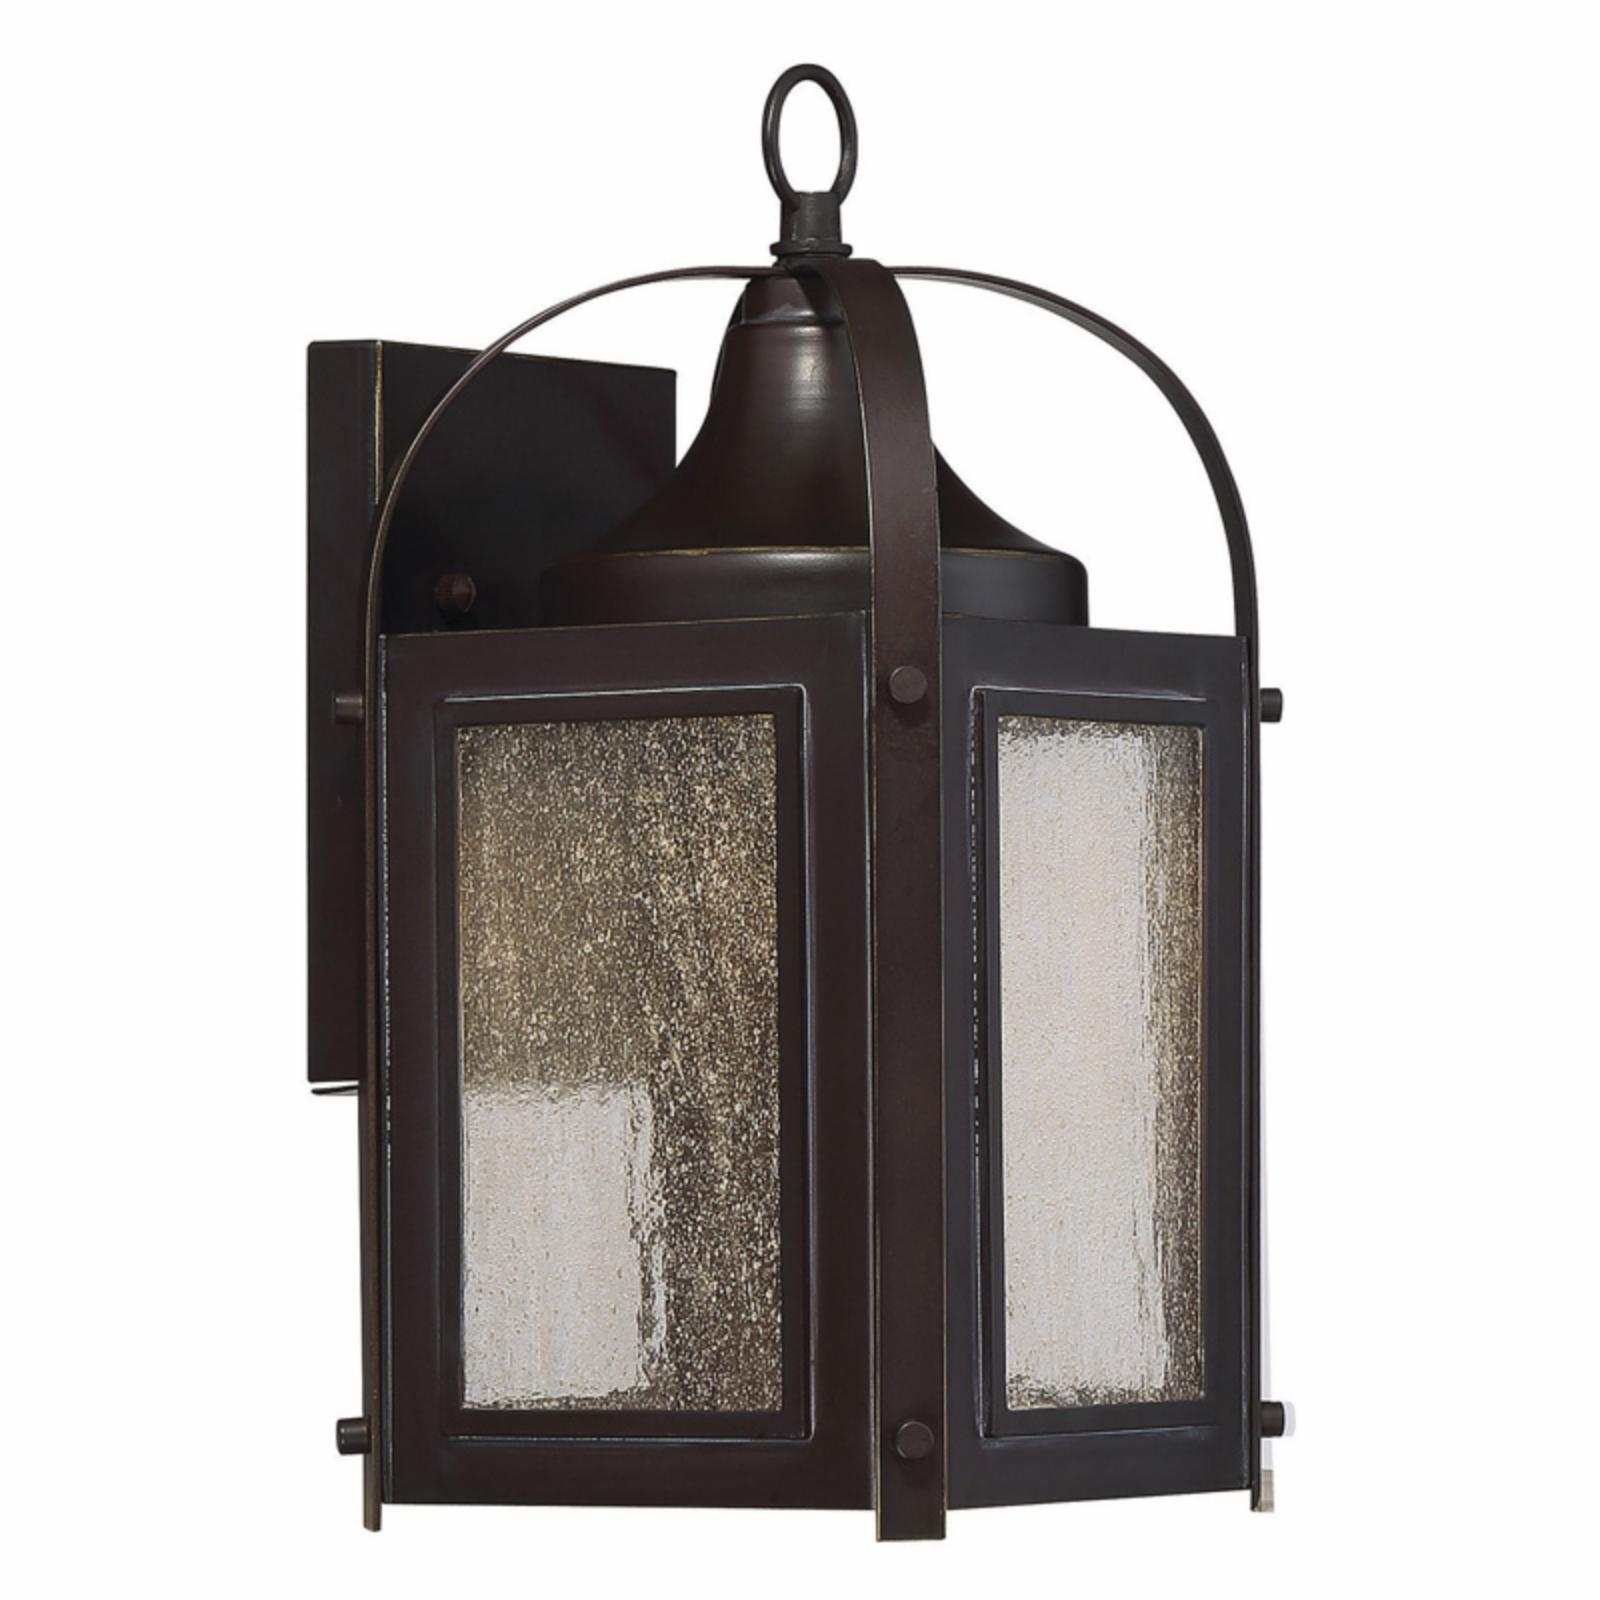 Savoy House Formby 5-33 Outdoor Wall Lantern - 5-330-213